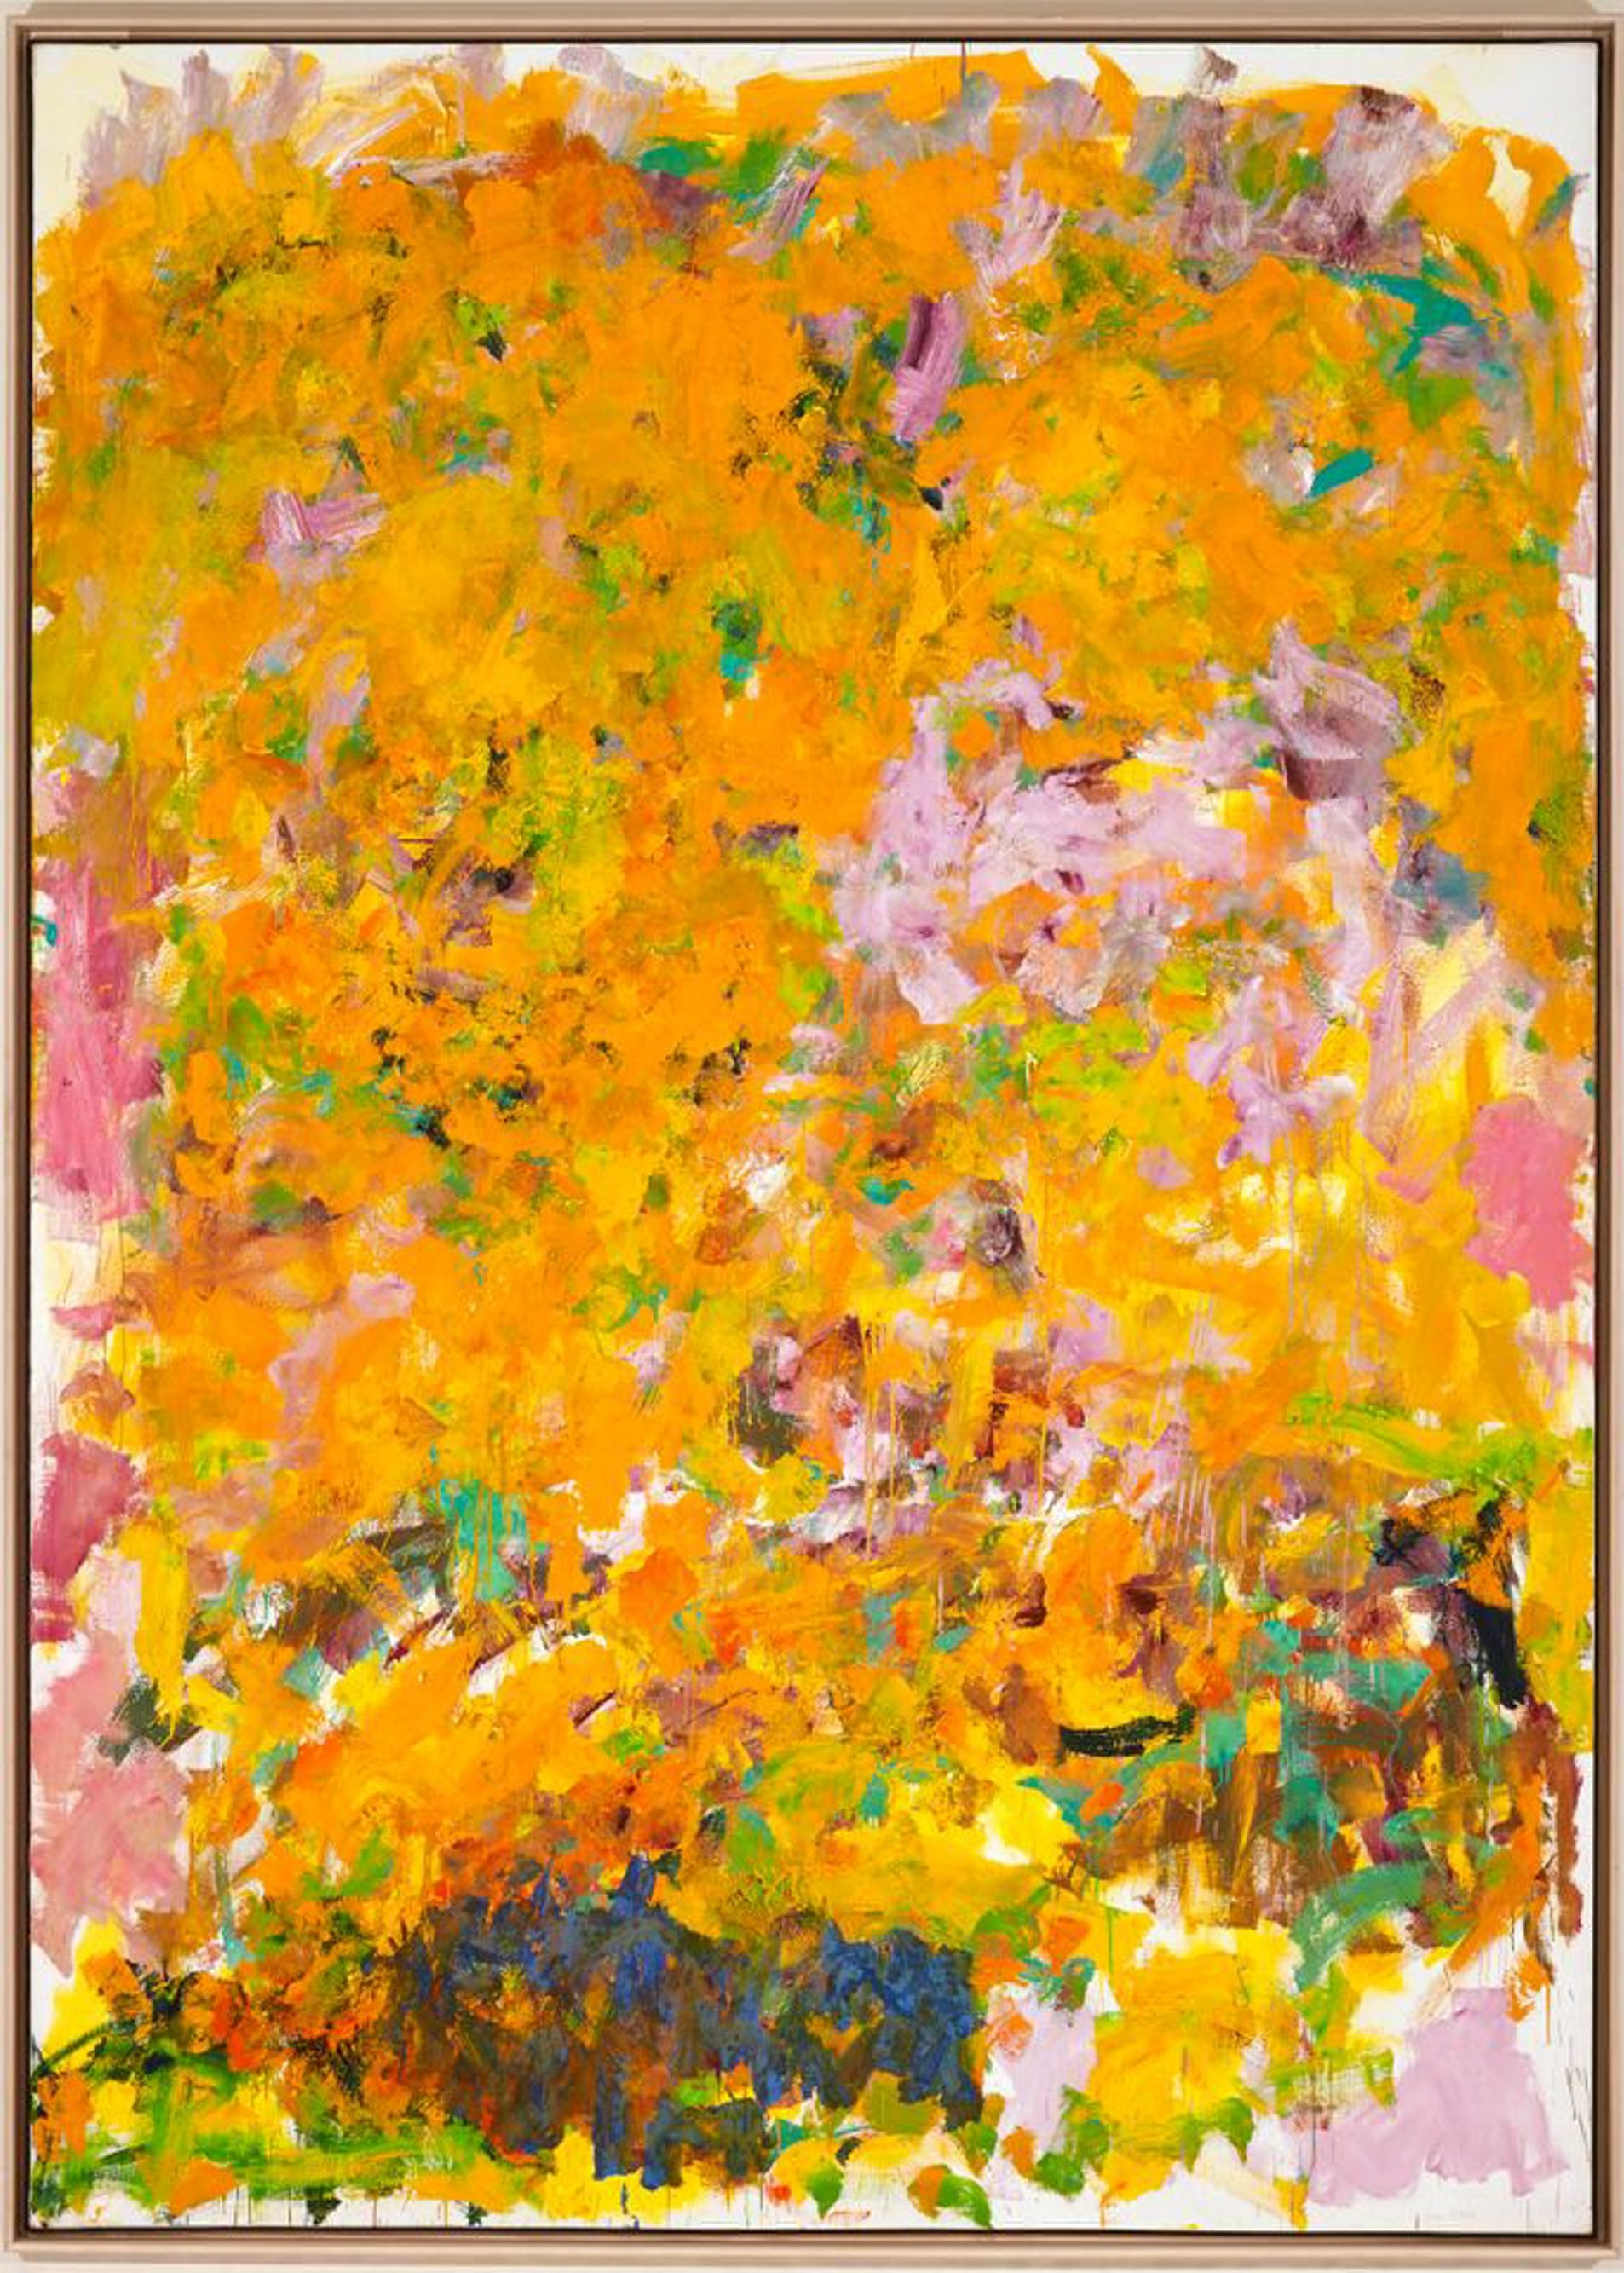 """""""Begonia,"""" a 1982 painting by Joan Mitchell, is part of the Castellani Art Museum's """"Highlights: The Castellani Collection."""""""